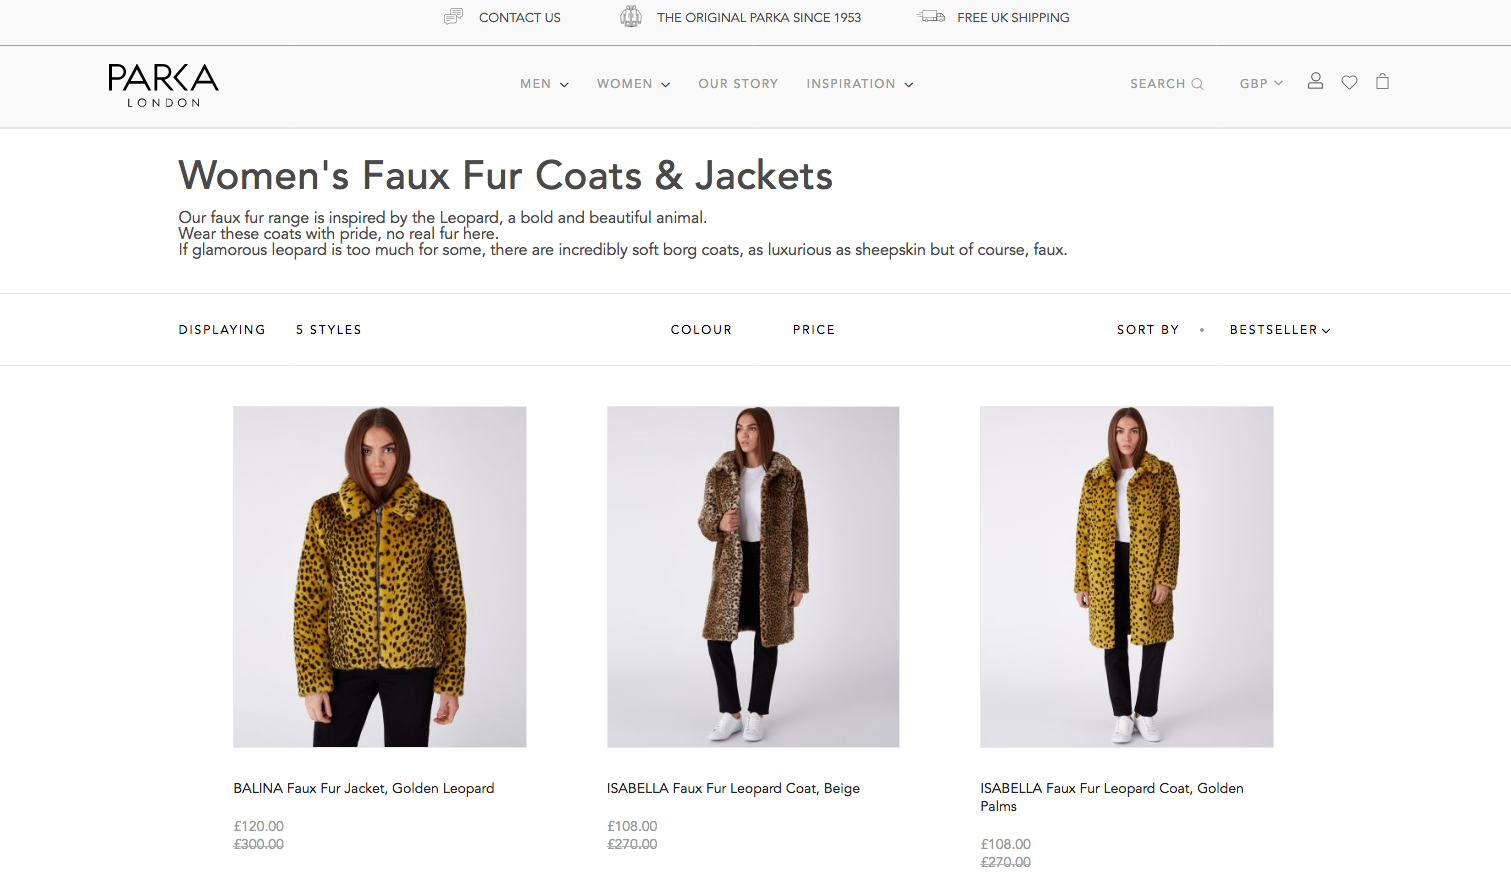 Parka London Product Listing Page